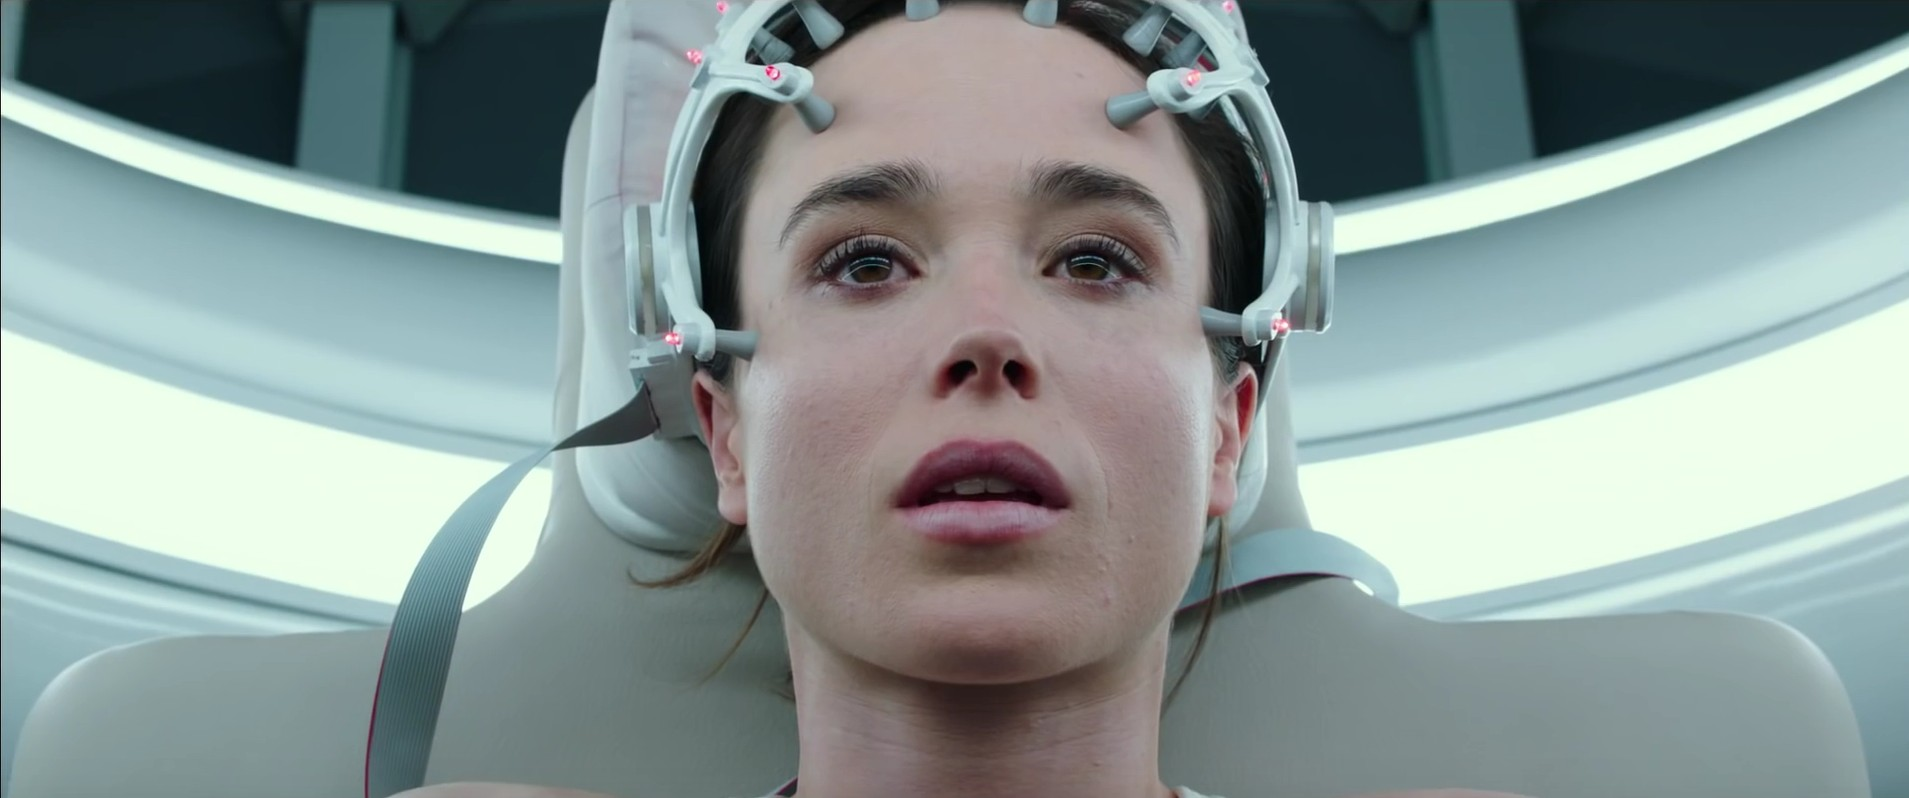 Flatliners Trailer: Ellen Page and Diego Luna Star in Horror Remake